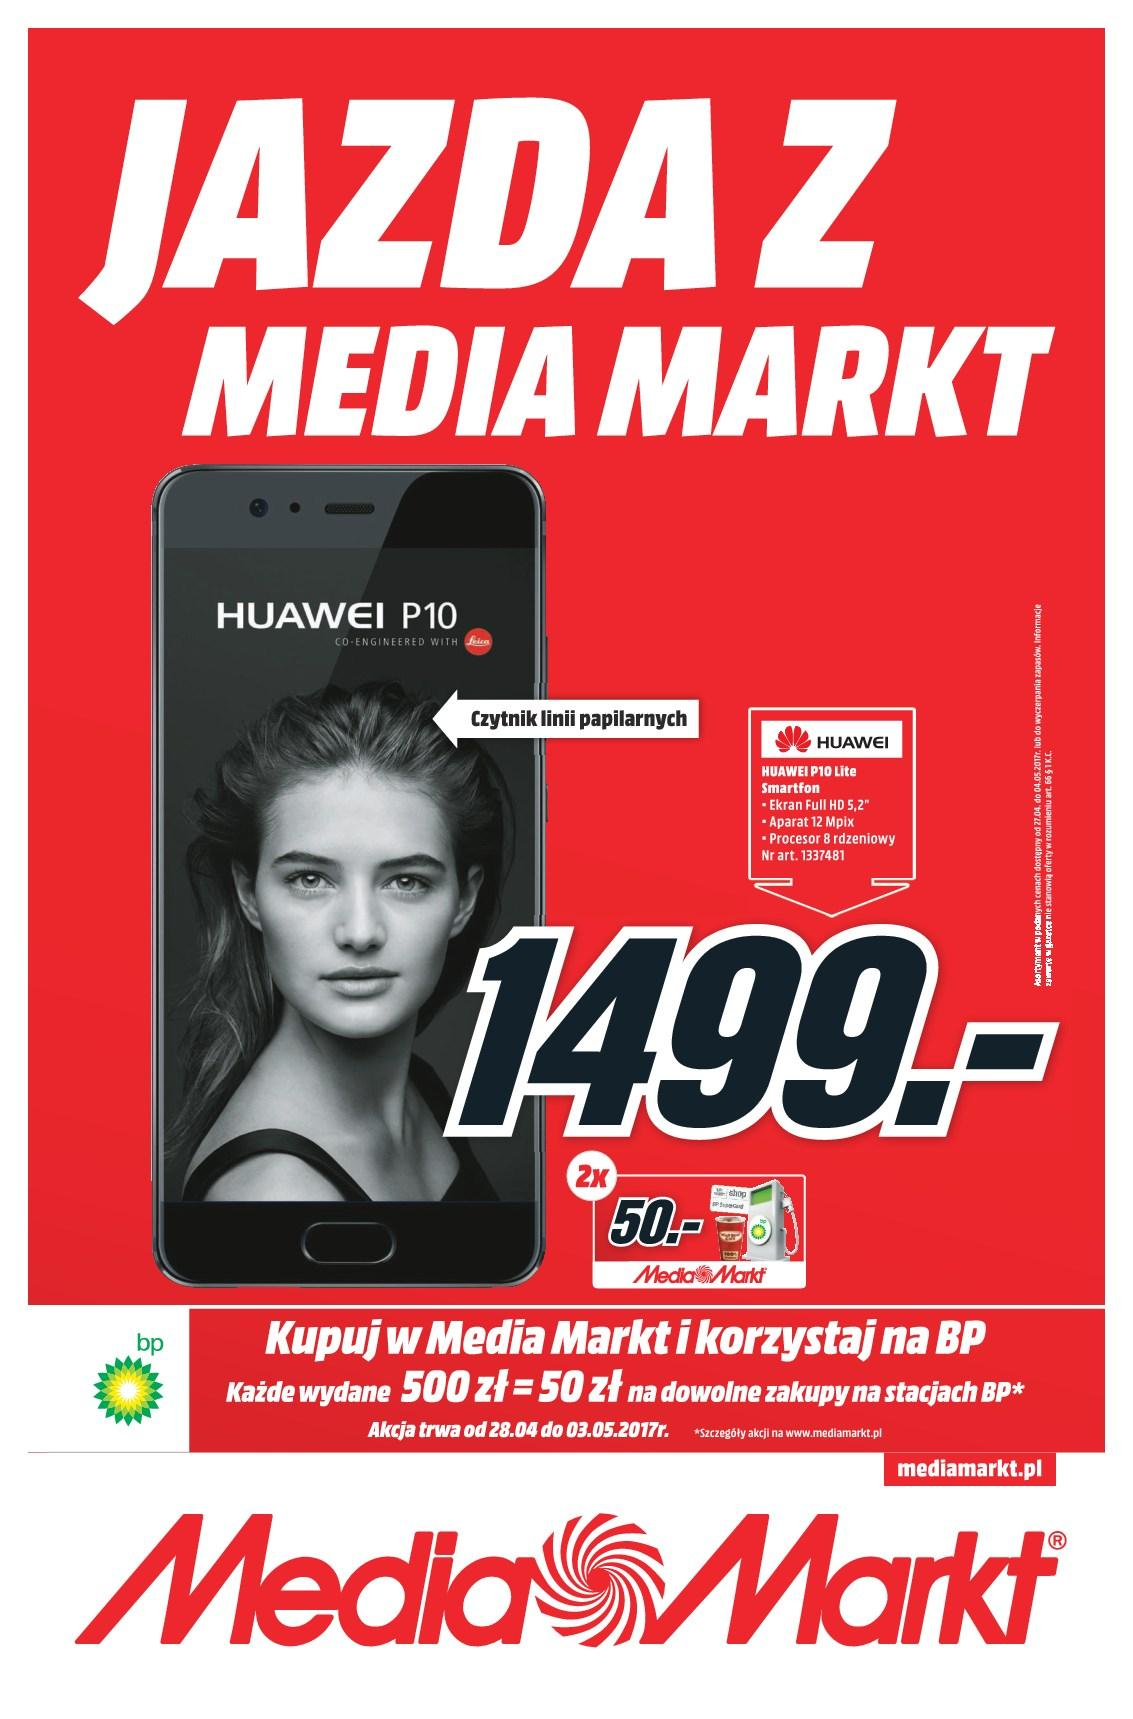 Gazetka promocyjna Media Markt do 03/05/2017 str.1